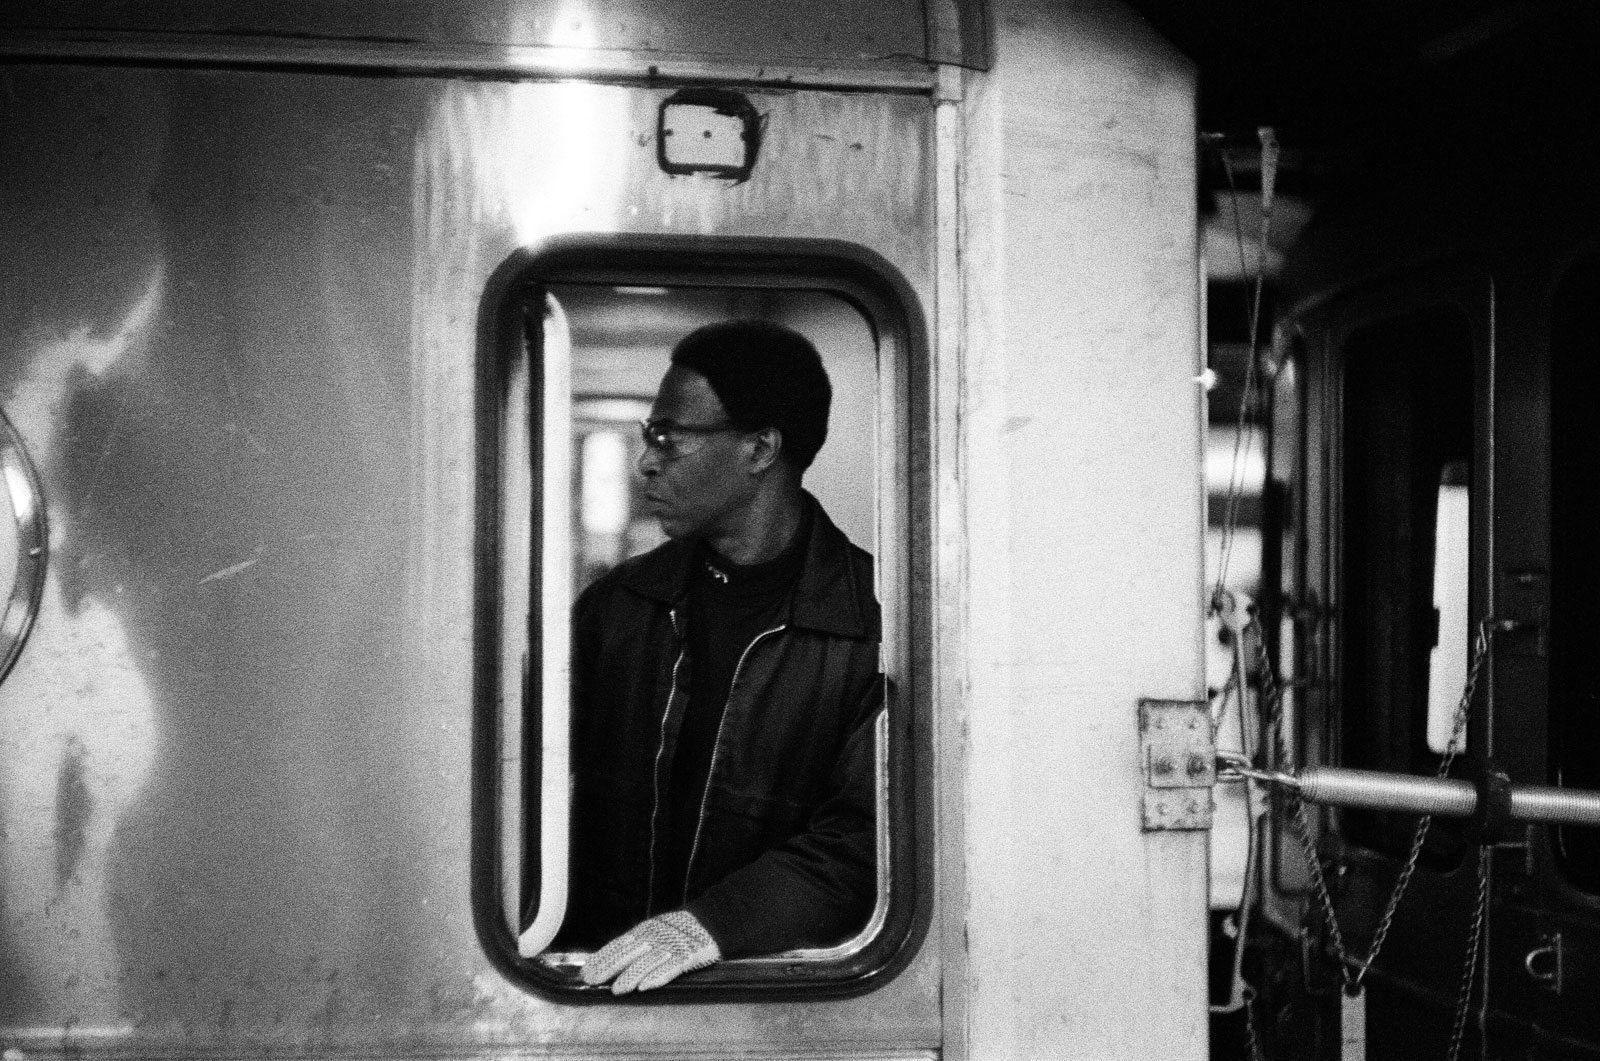 An MTA train conductor in profile, seen through the window of the subway train